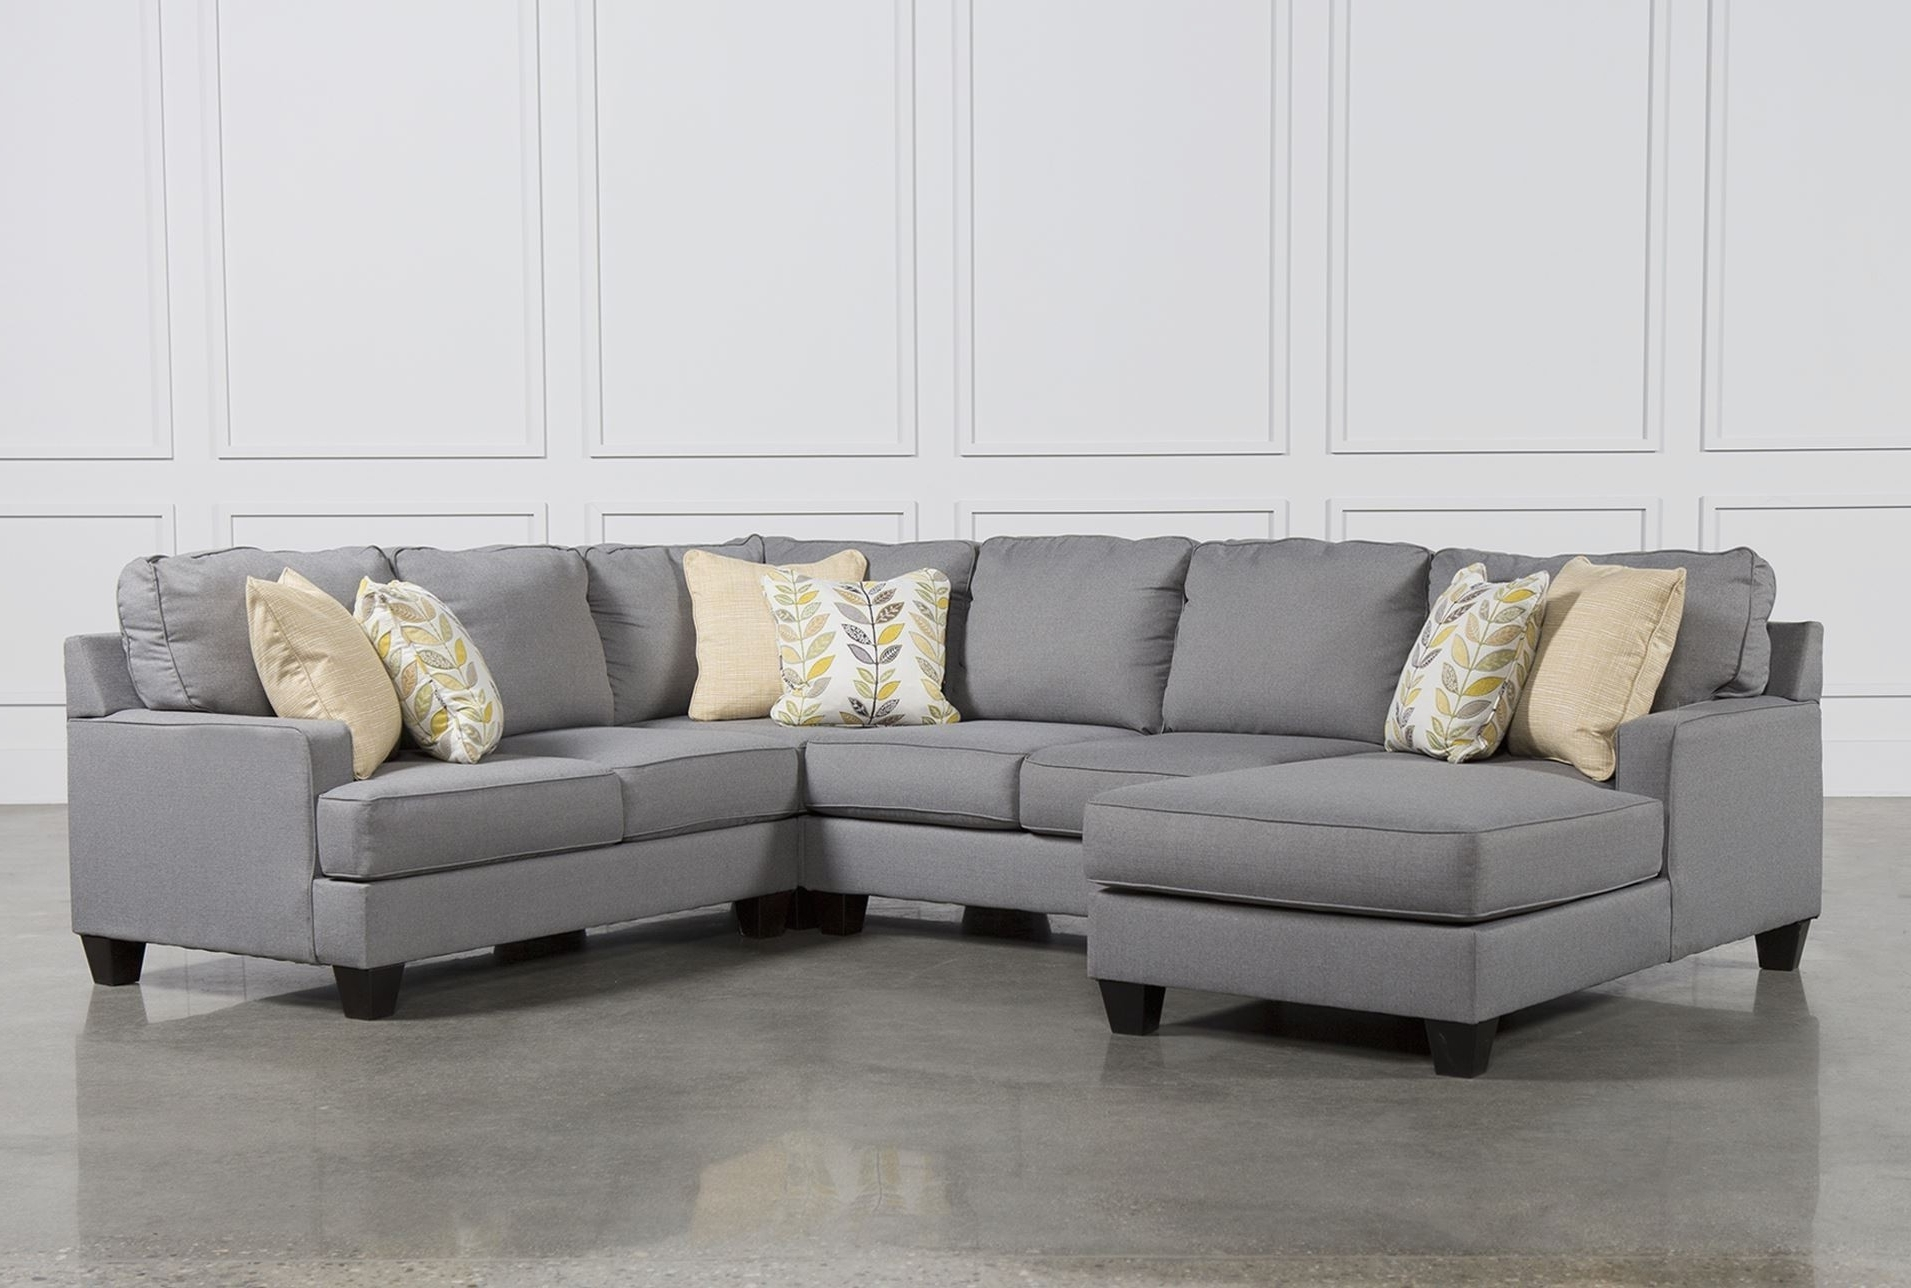 2018 Living Spaces Sectional Sofas Inspirational Sofa Alder 4 Piece Inside Living Spaces Sectional Sofas (View 1 of 20)